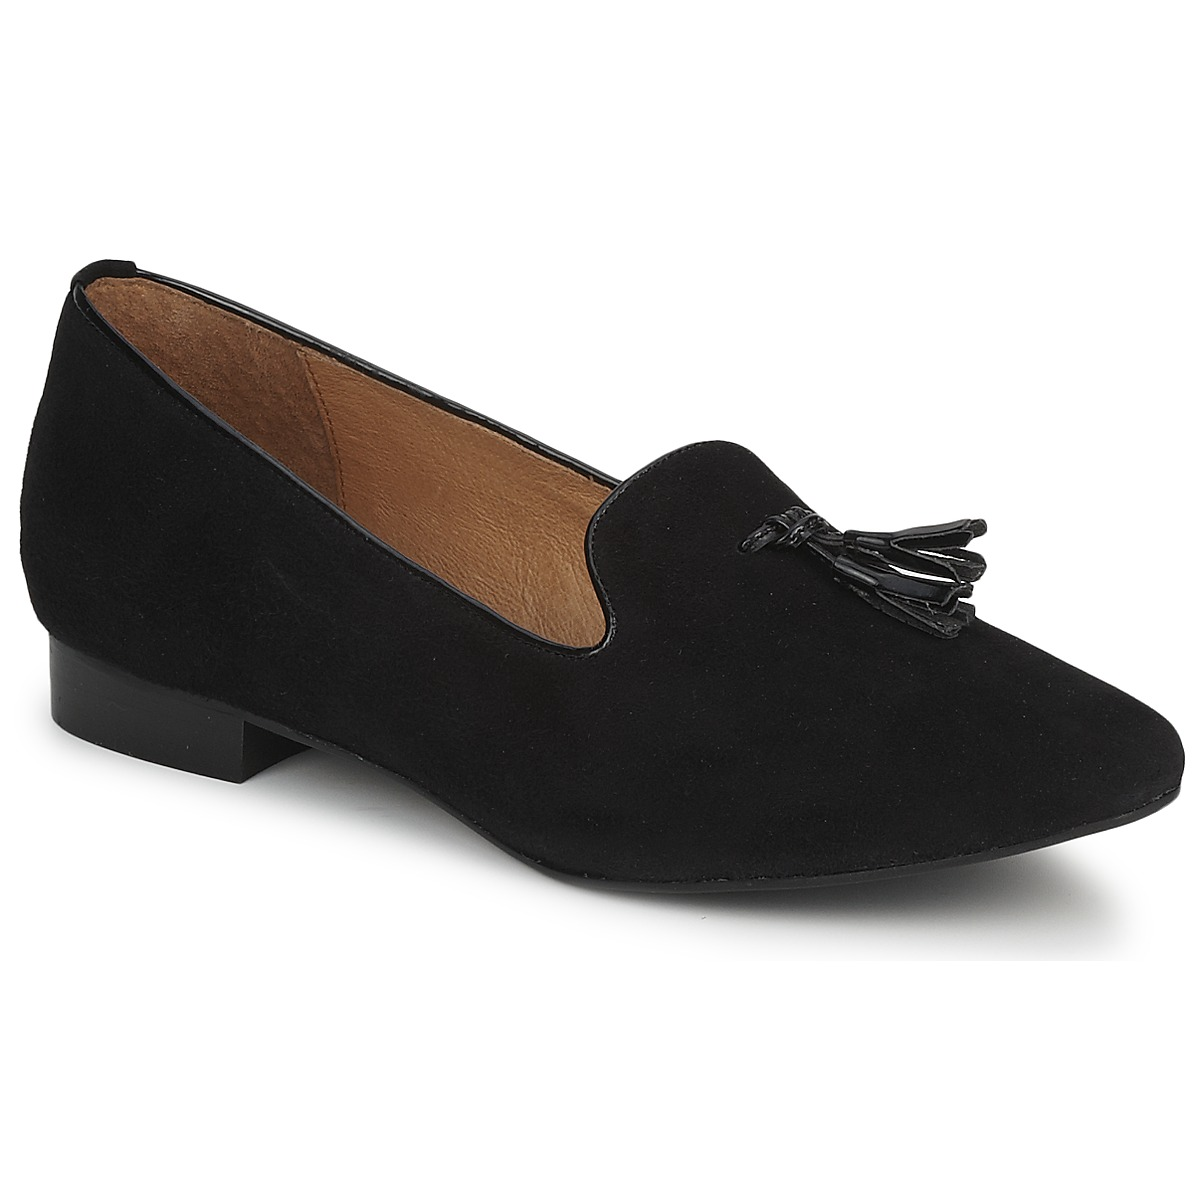 betty london loafer